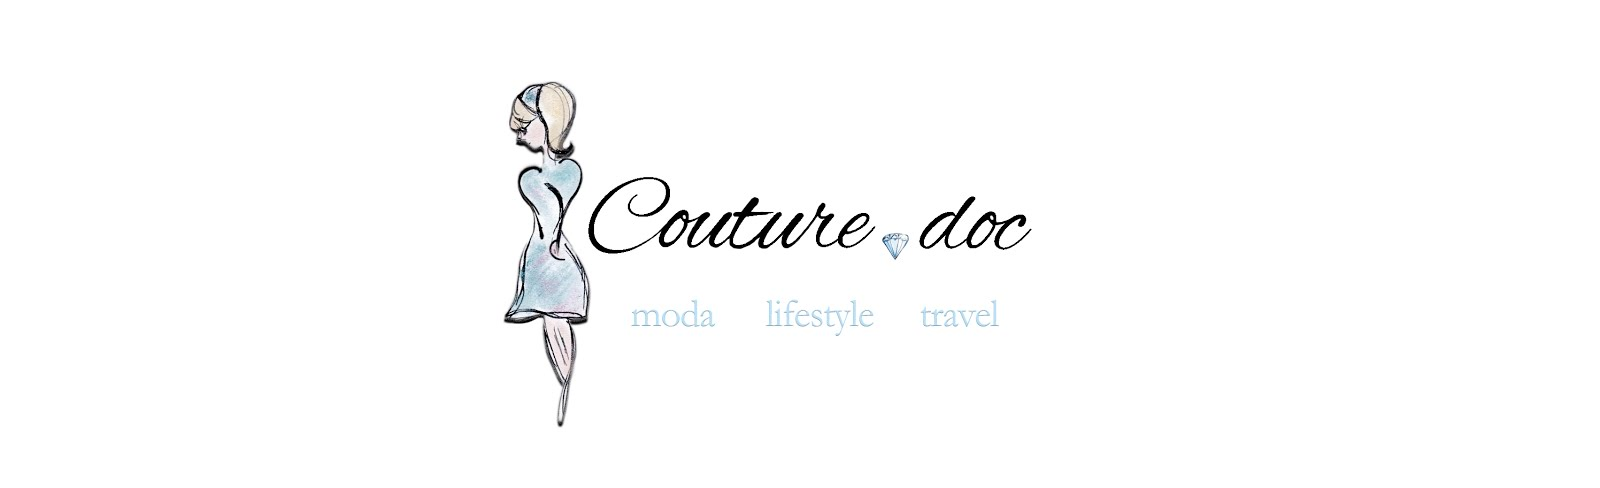 couture.doc